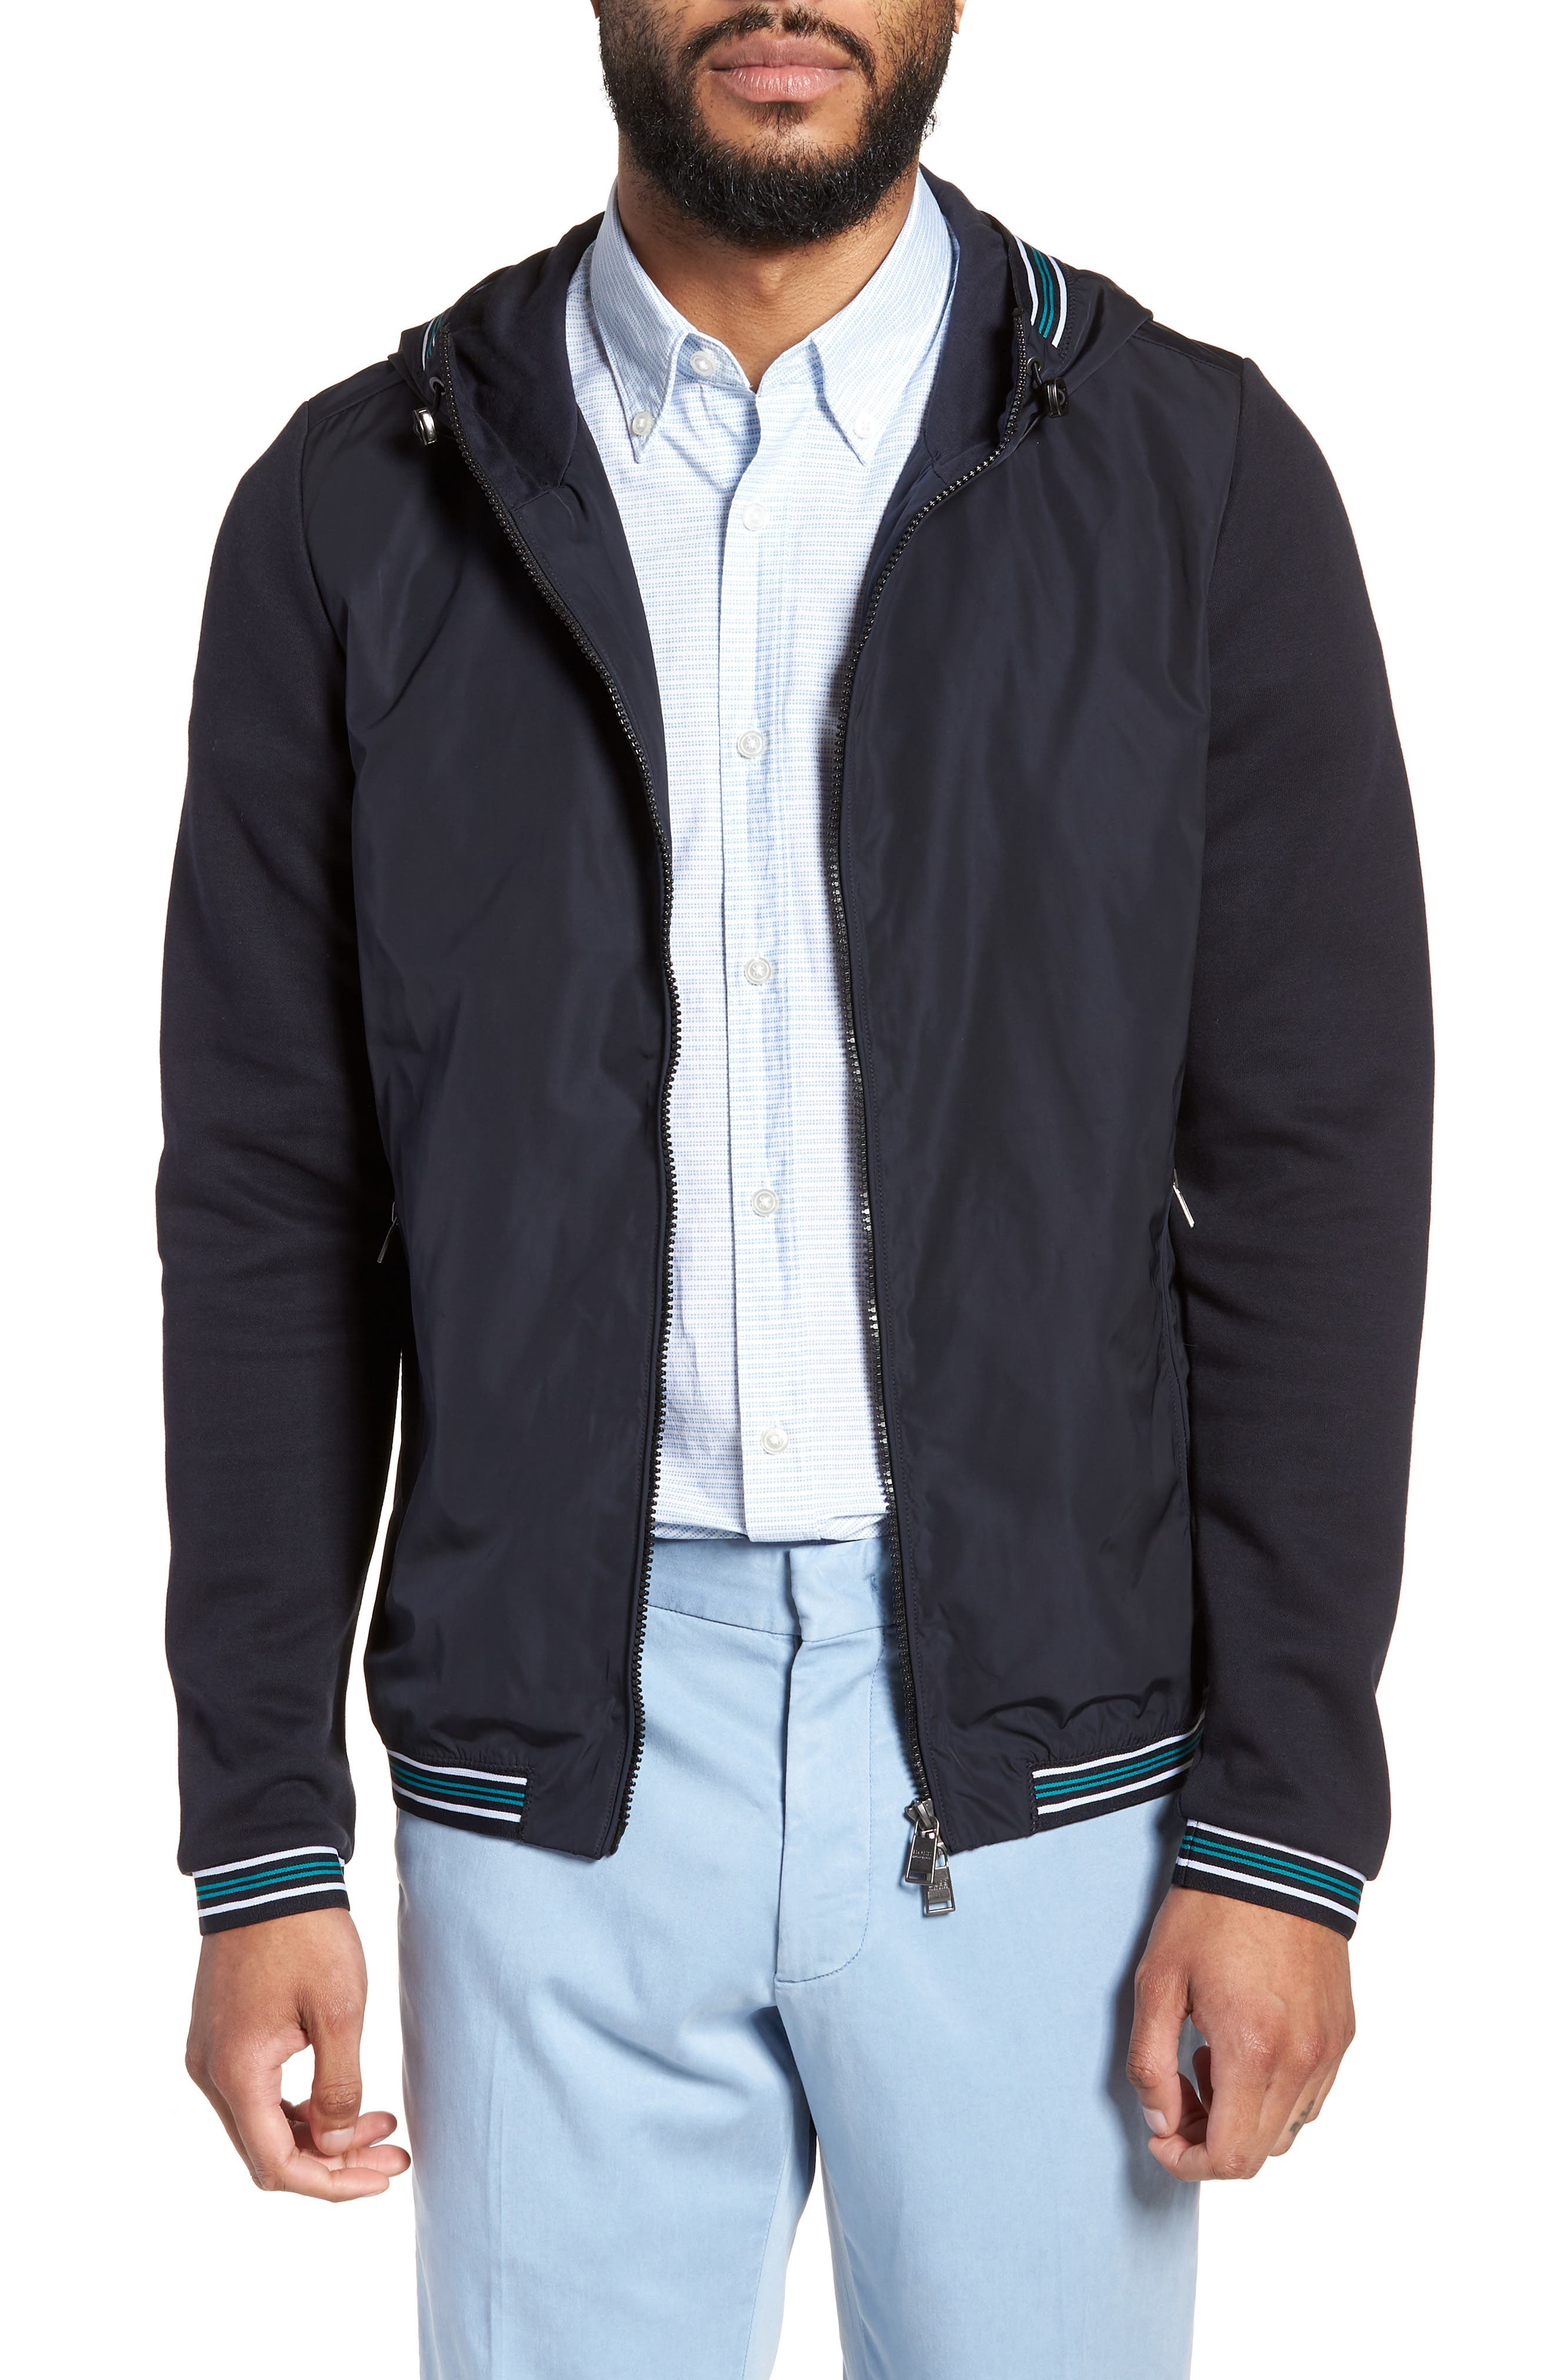 Sibly Slim Fit Jersey Hooded Jacket,                             Main thumbnail 1, color,                             Blue